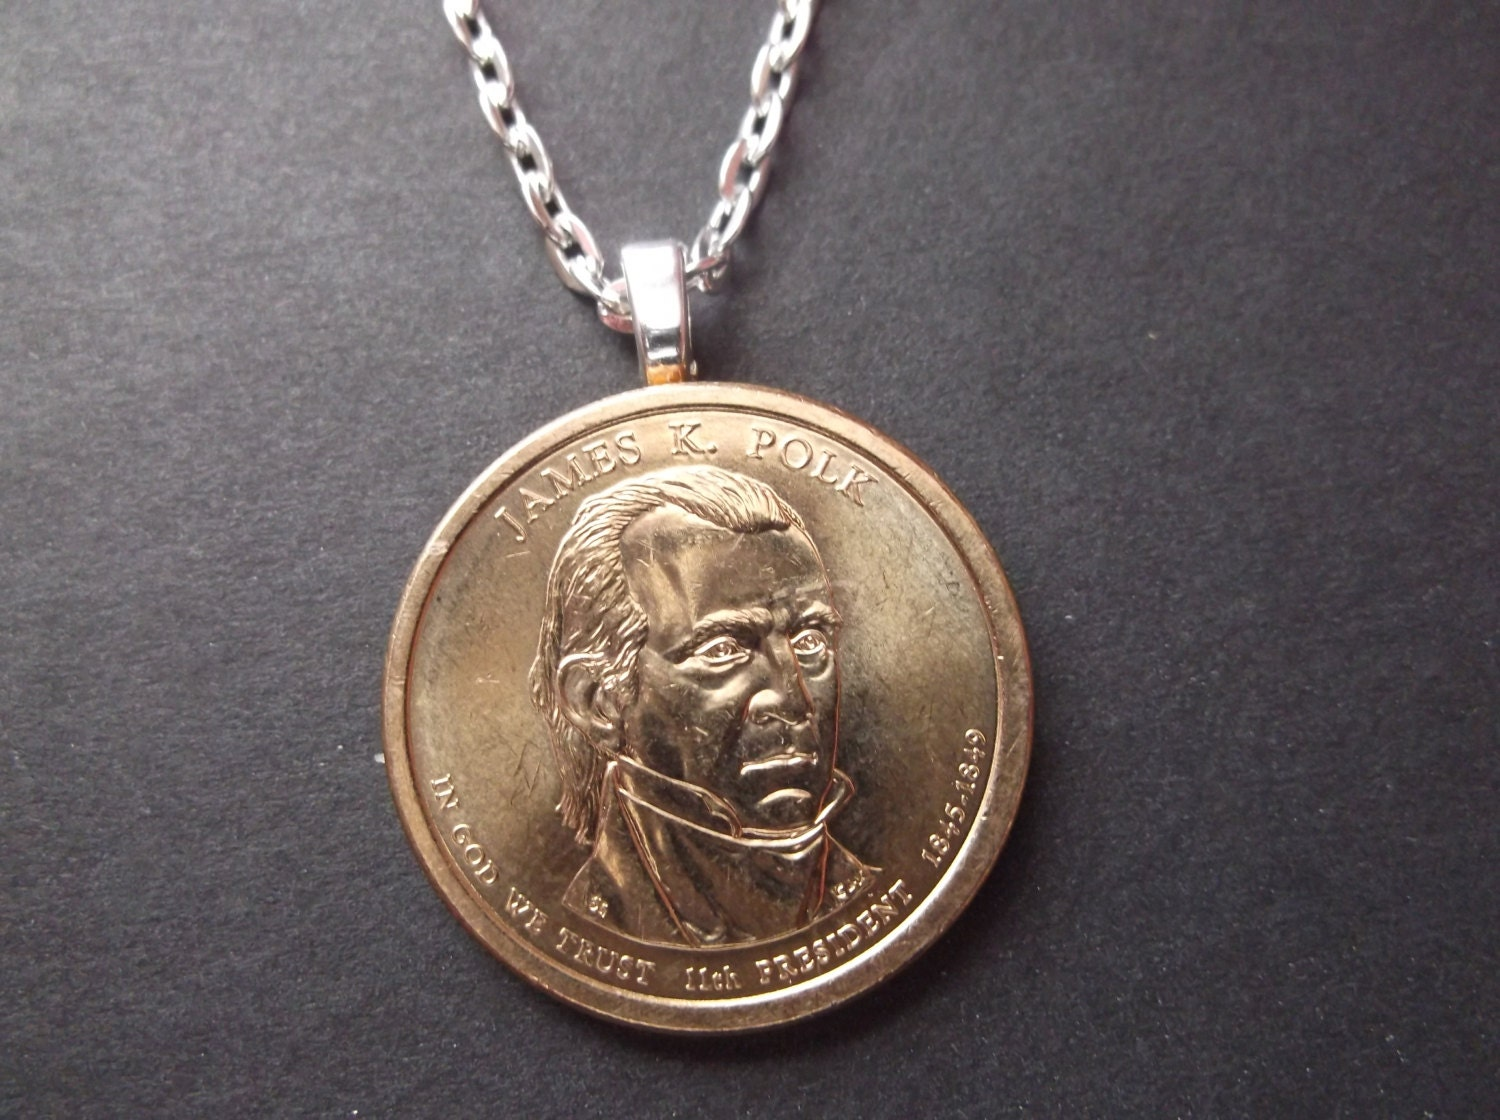 James K Polk United States Gold Colored Dollar Coin Necklace